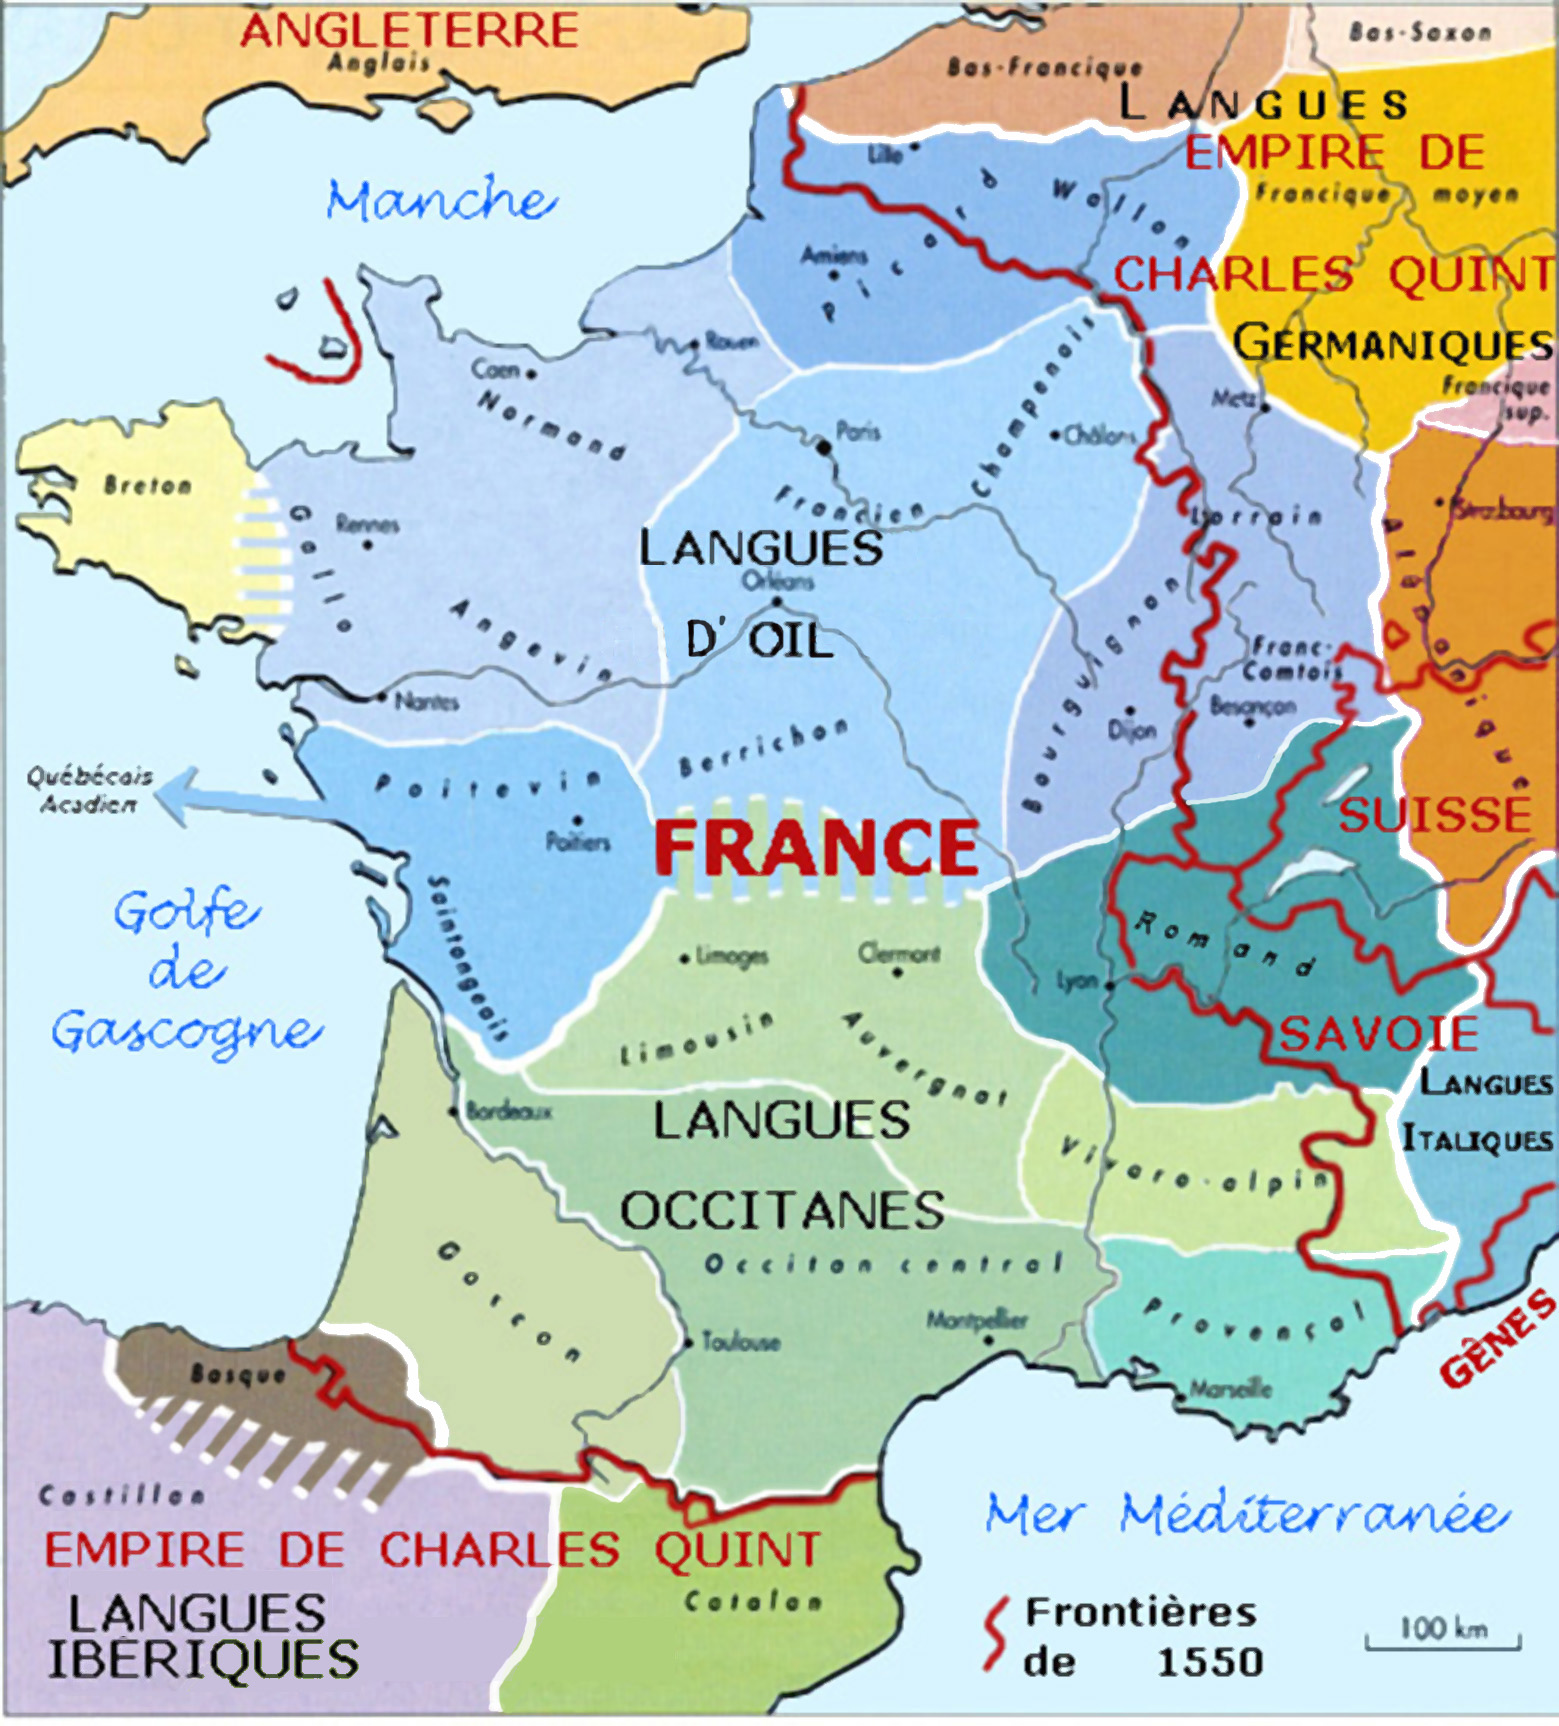 France Map Of.File France Language Map 1550 Jpg Wikimedia Commons